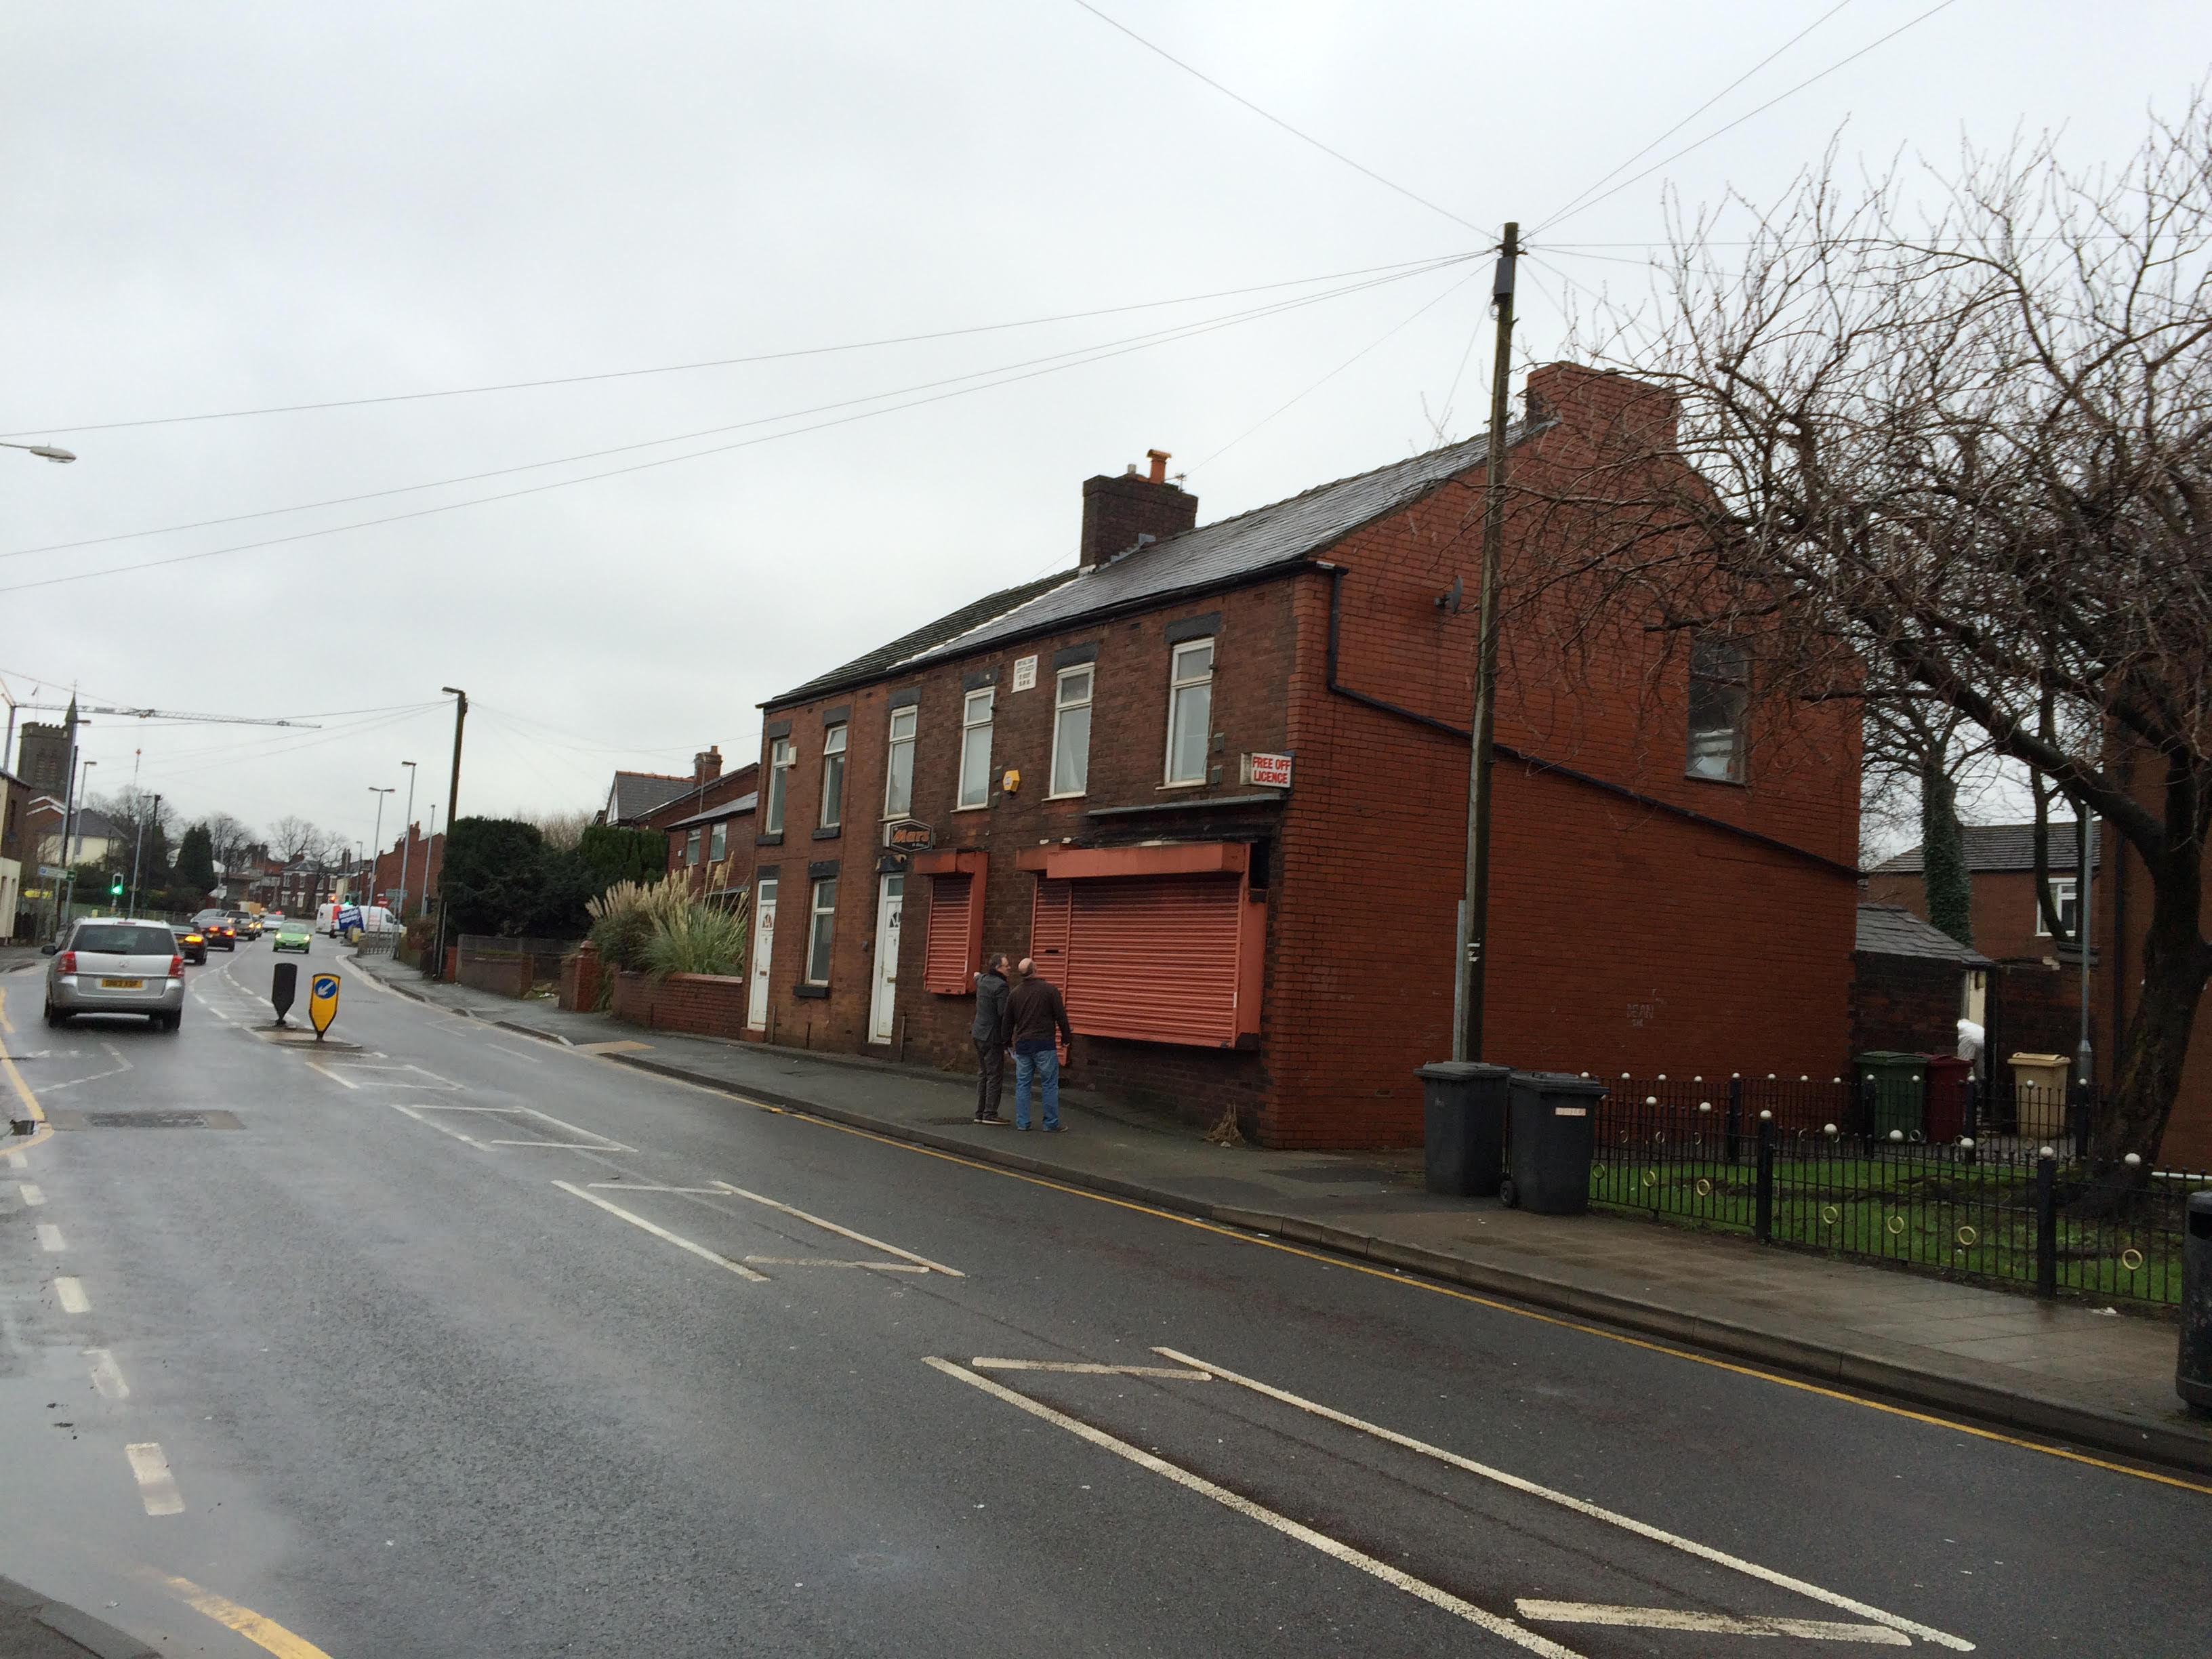 The houses on Wigan Road are being converted into bedsits